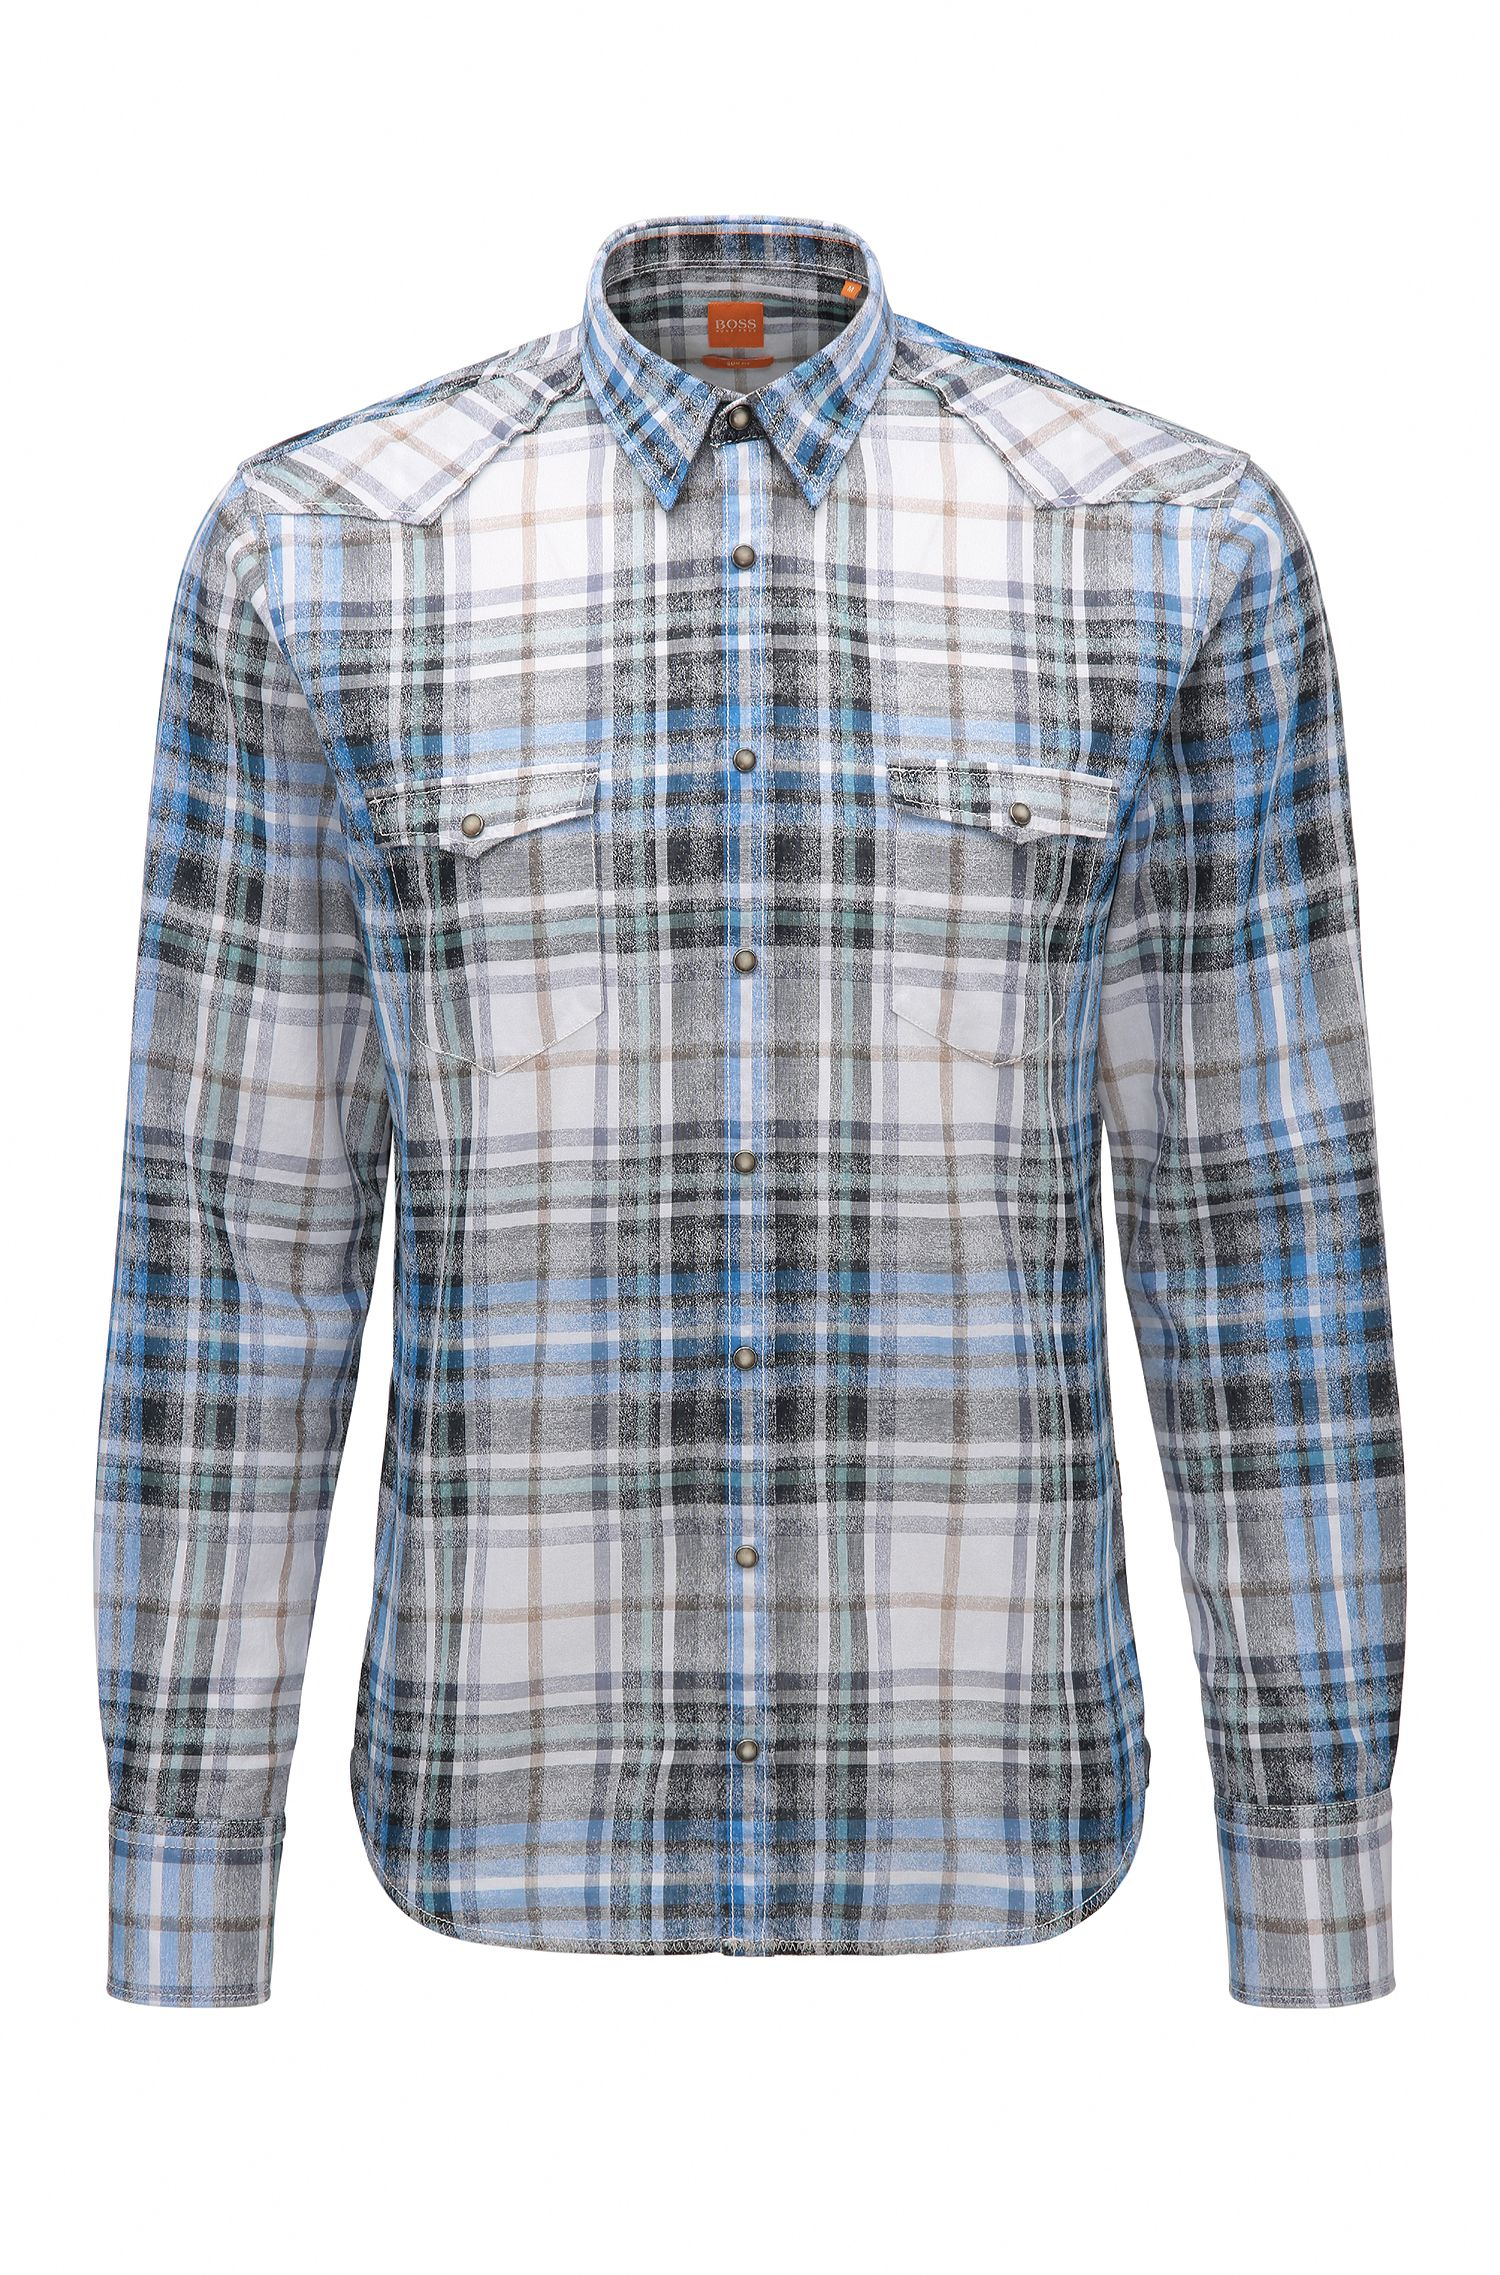 Slim-fit shirt in cotton jacquard twill